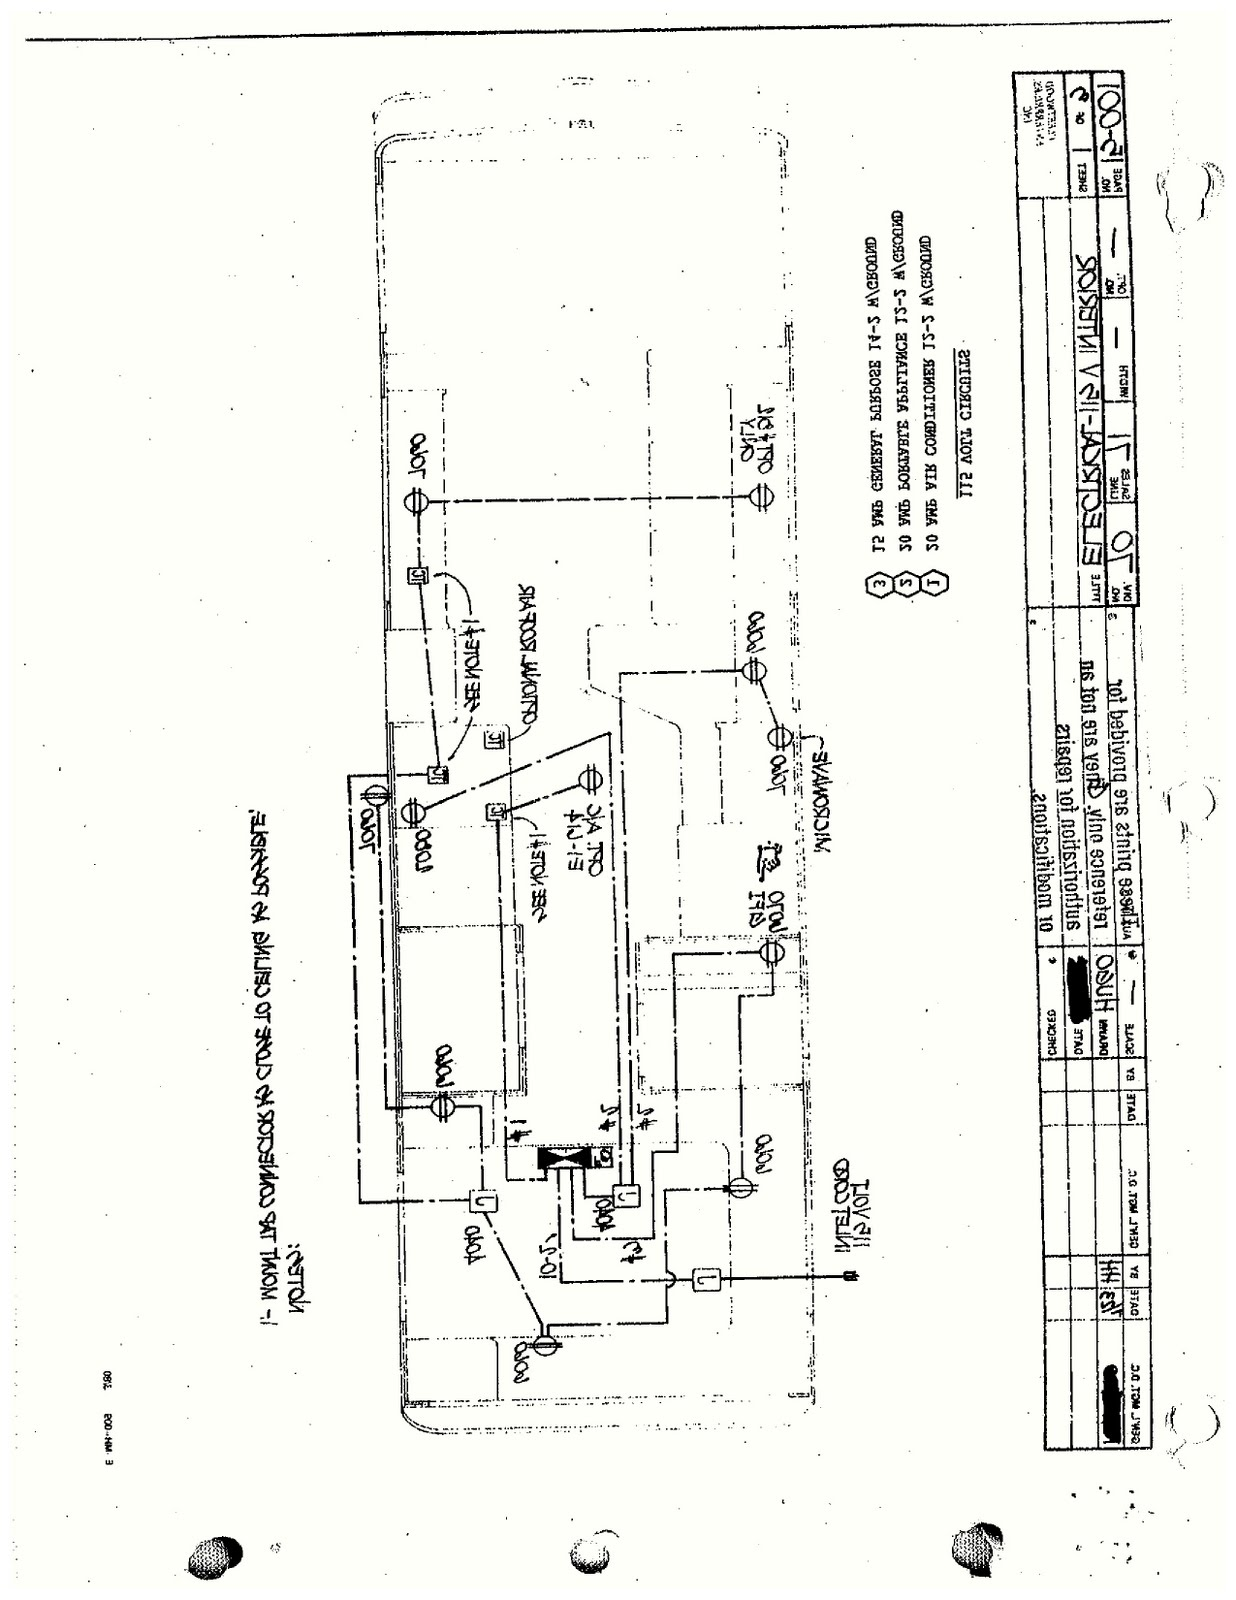 smc flex wiring diagram 2010 flex wiring diagram #6